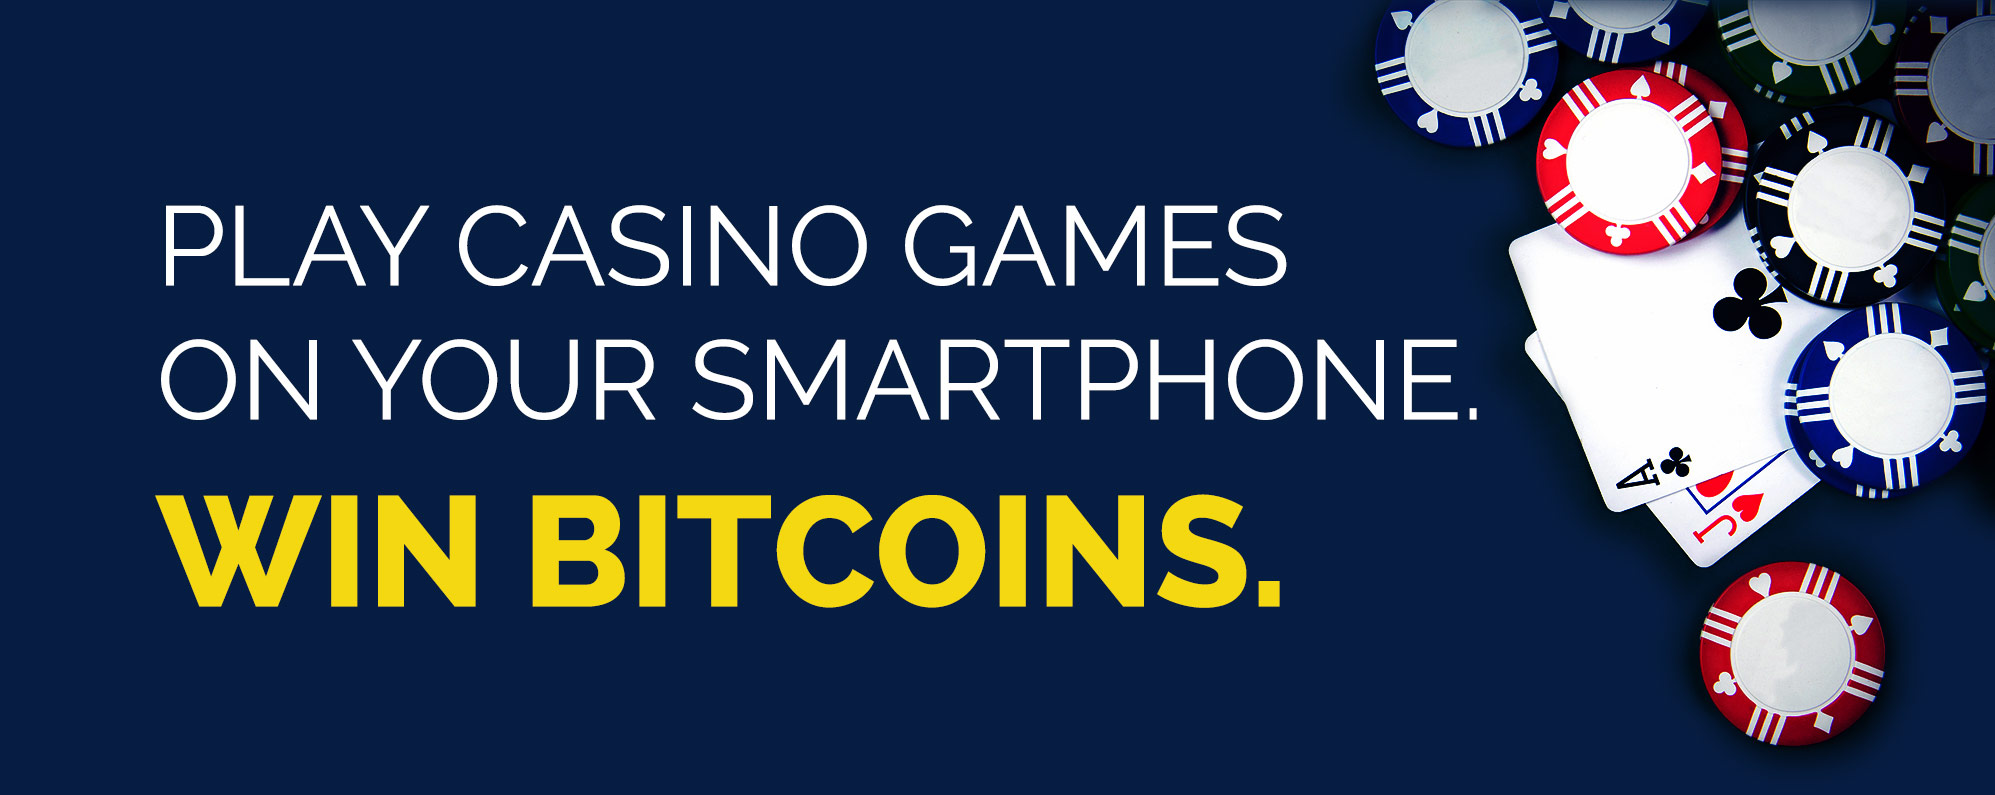 Win bitcoins